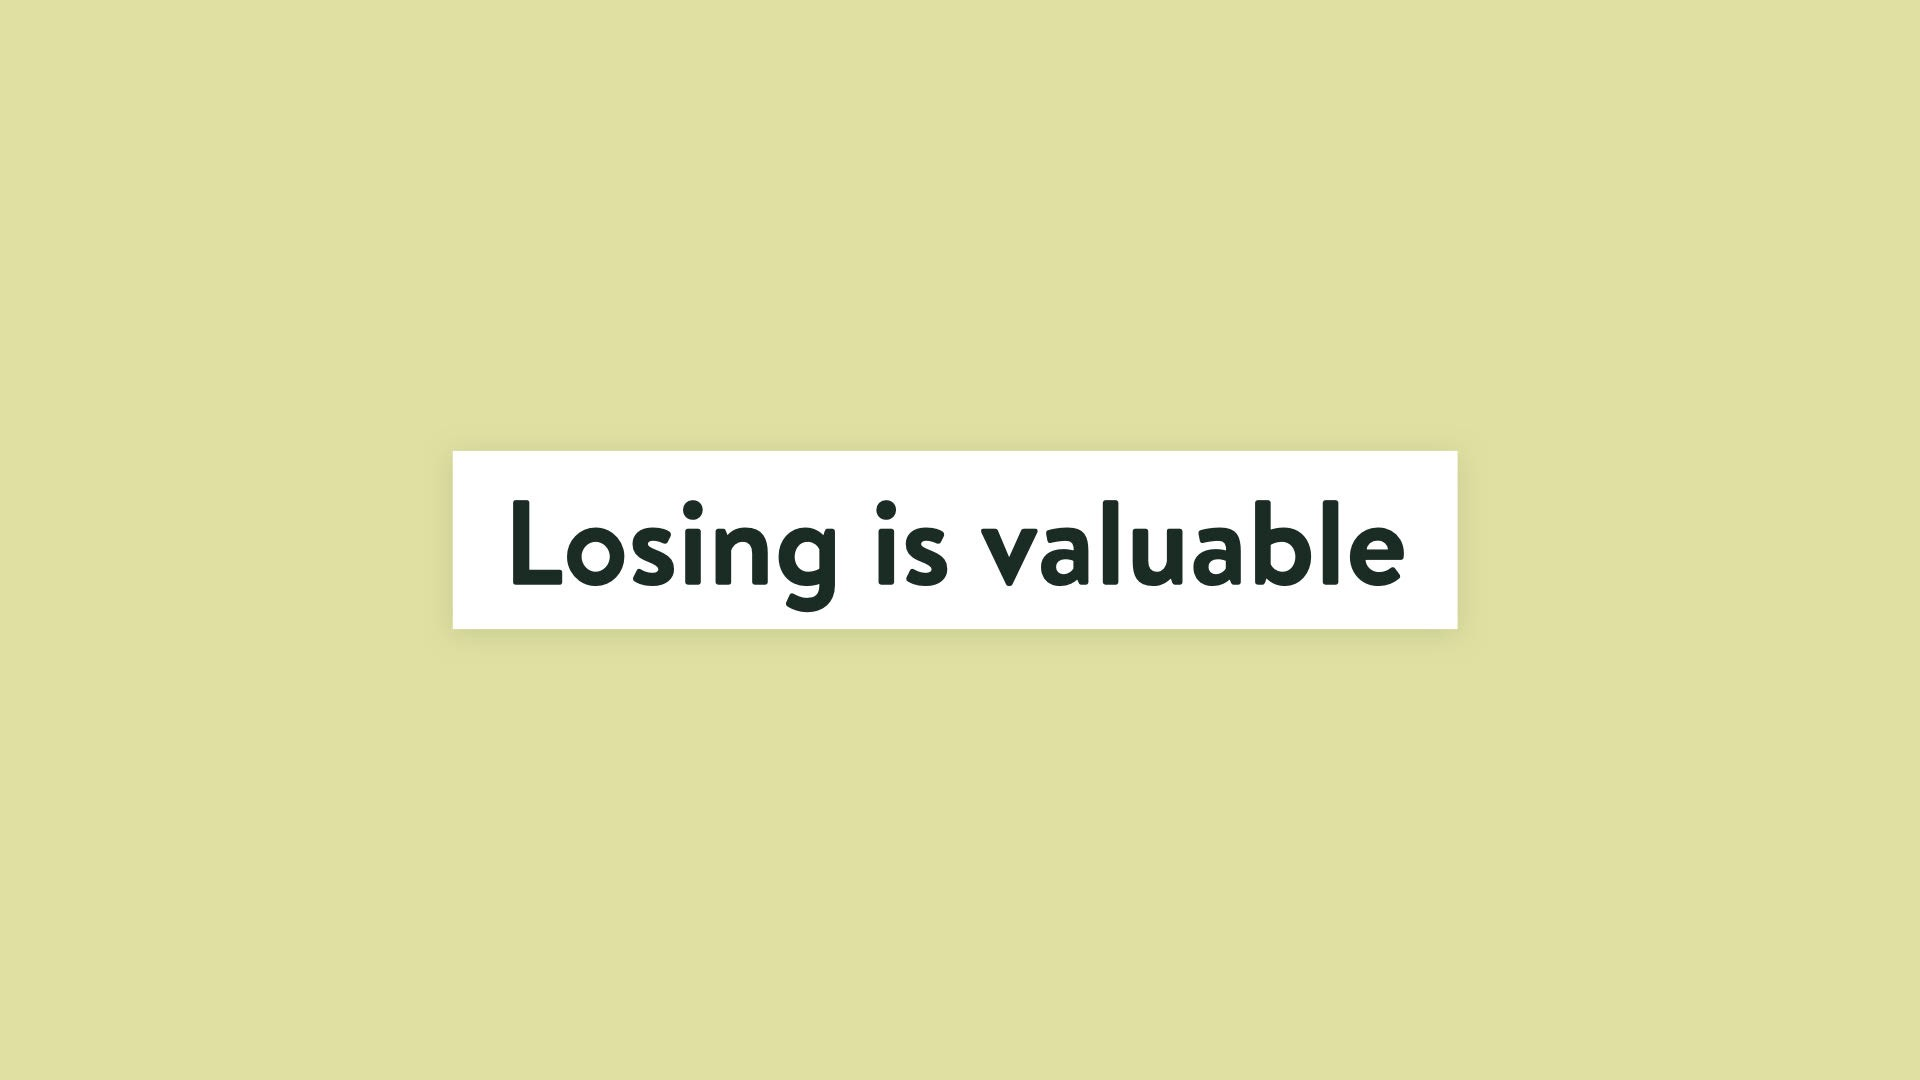 Losing is valuable